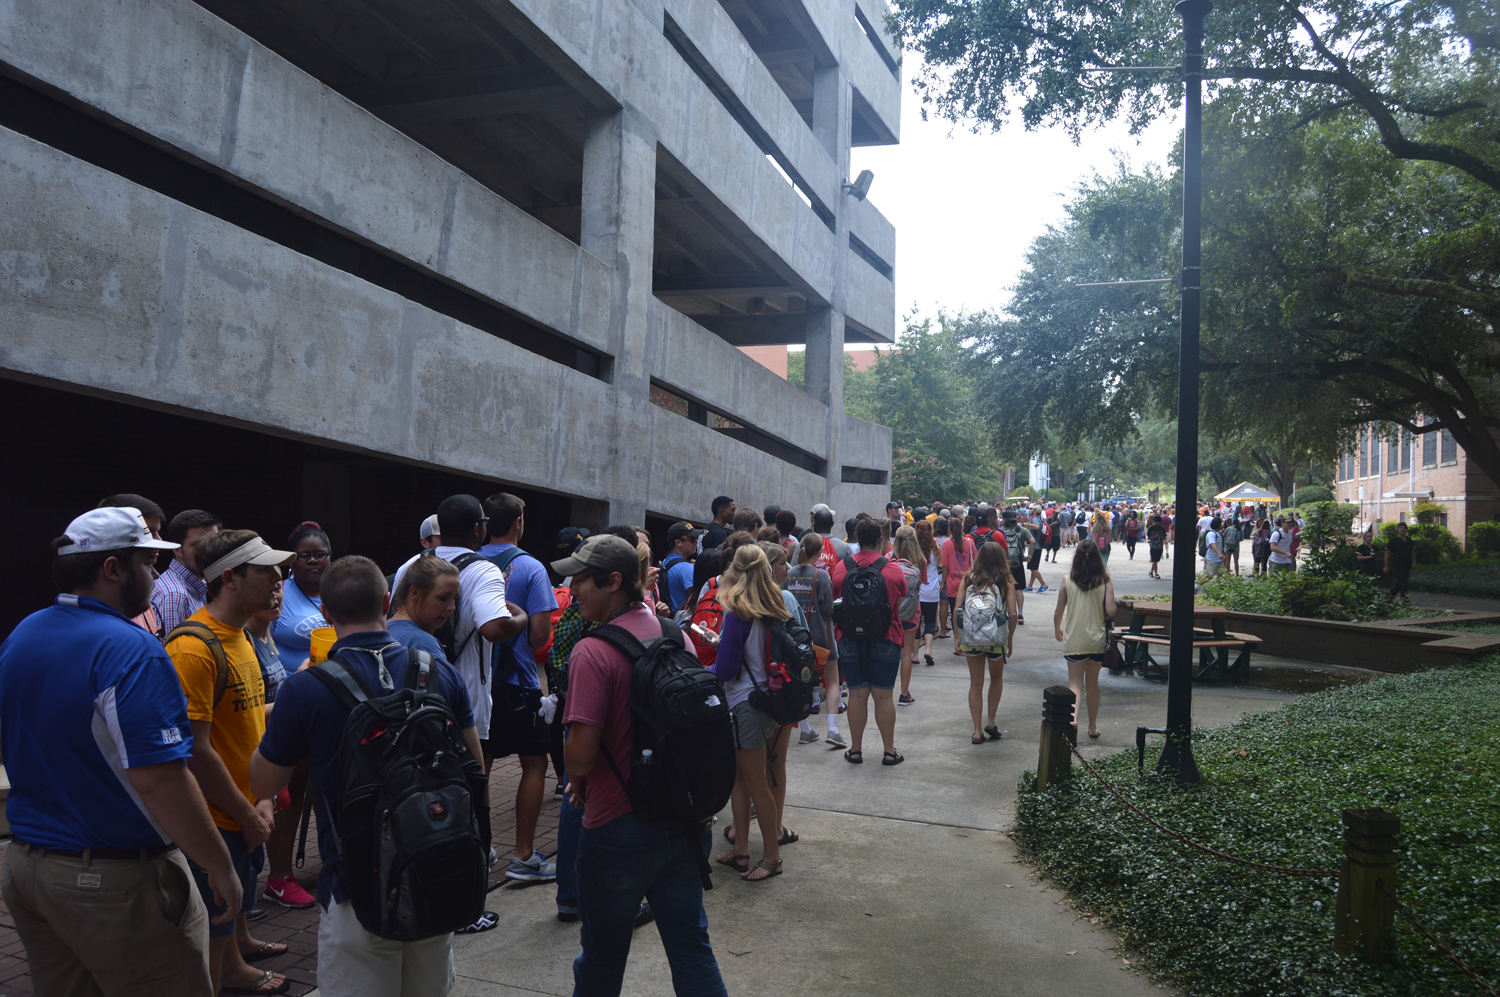 Southern Miss students gather in line to receive tickets to the Southern Miss vs. Mississippi State football game Friday Morning, August 21, 2015. Southern Miss is scheduled to play Mississippi State September 5th at home.